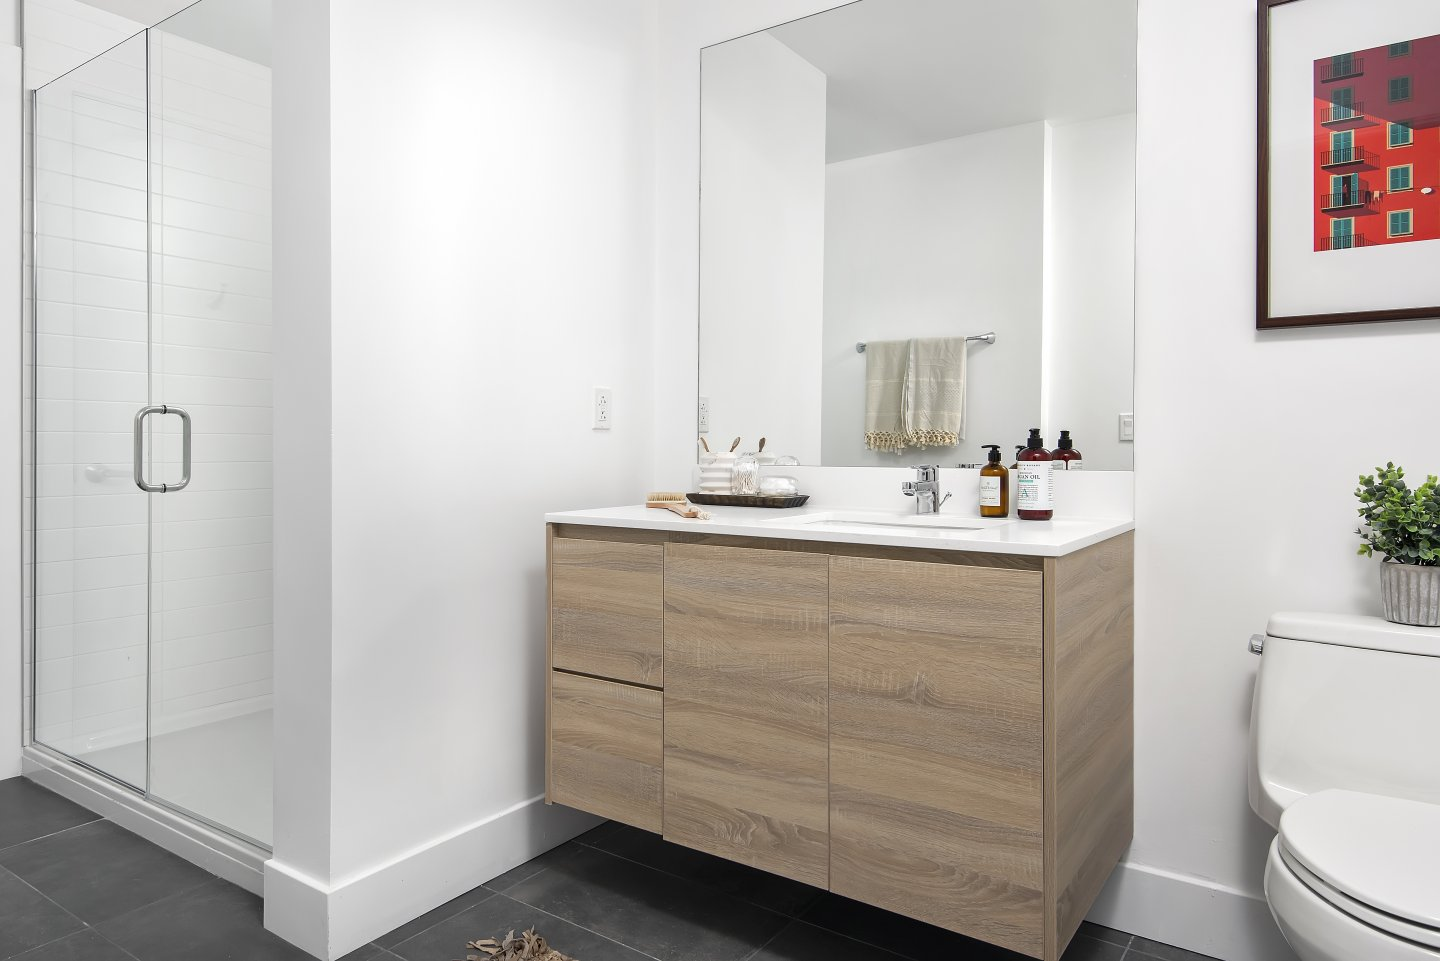 The Fields bathroom with white single sink counter, tan wooden cabinets, and glass shower stall with white tiles